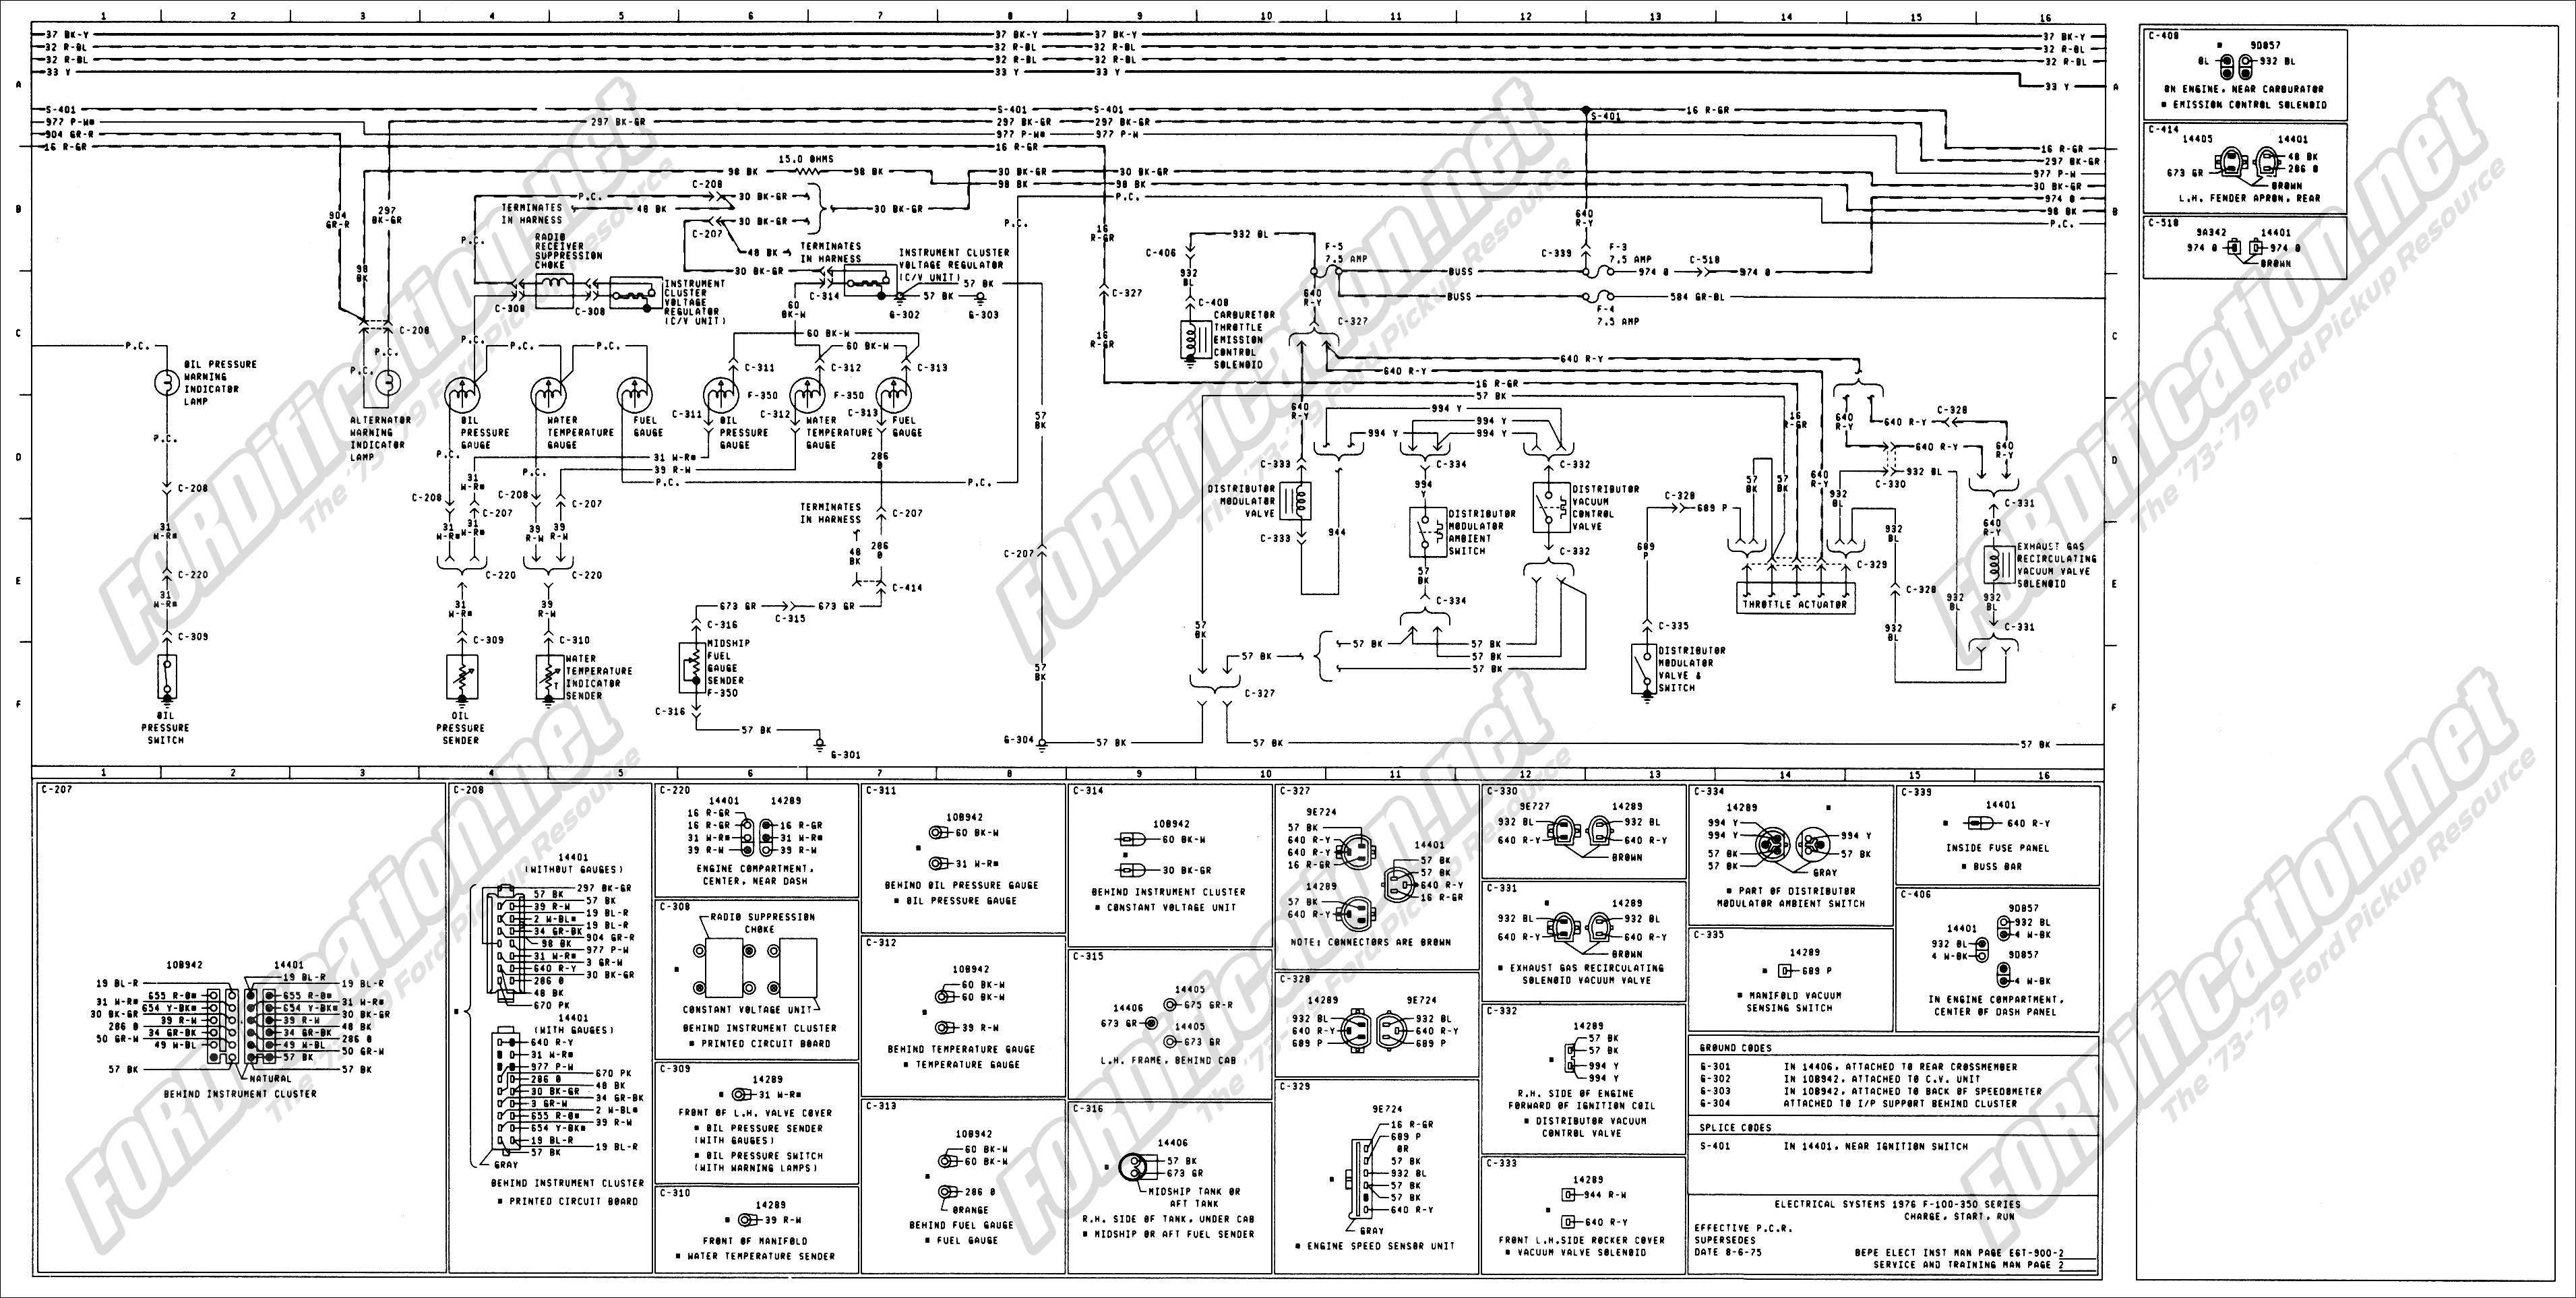 diagram] 1965 ford f100 instrument cluster wiring diagram full version hd  quality wiring diagram - wiredwiring2n.stefanocerchiaro.it  stefanocerchiaro.it